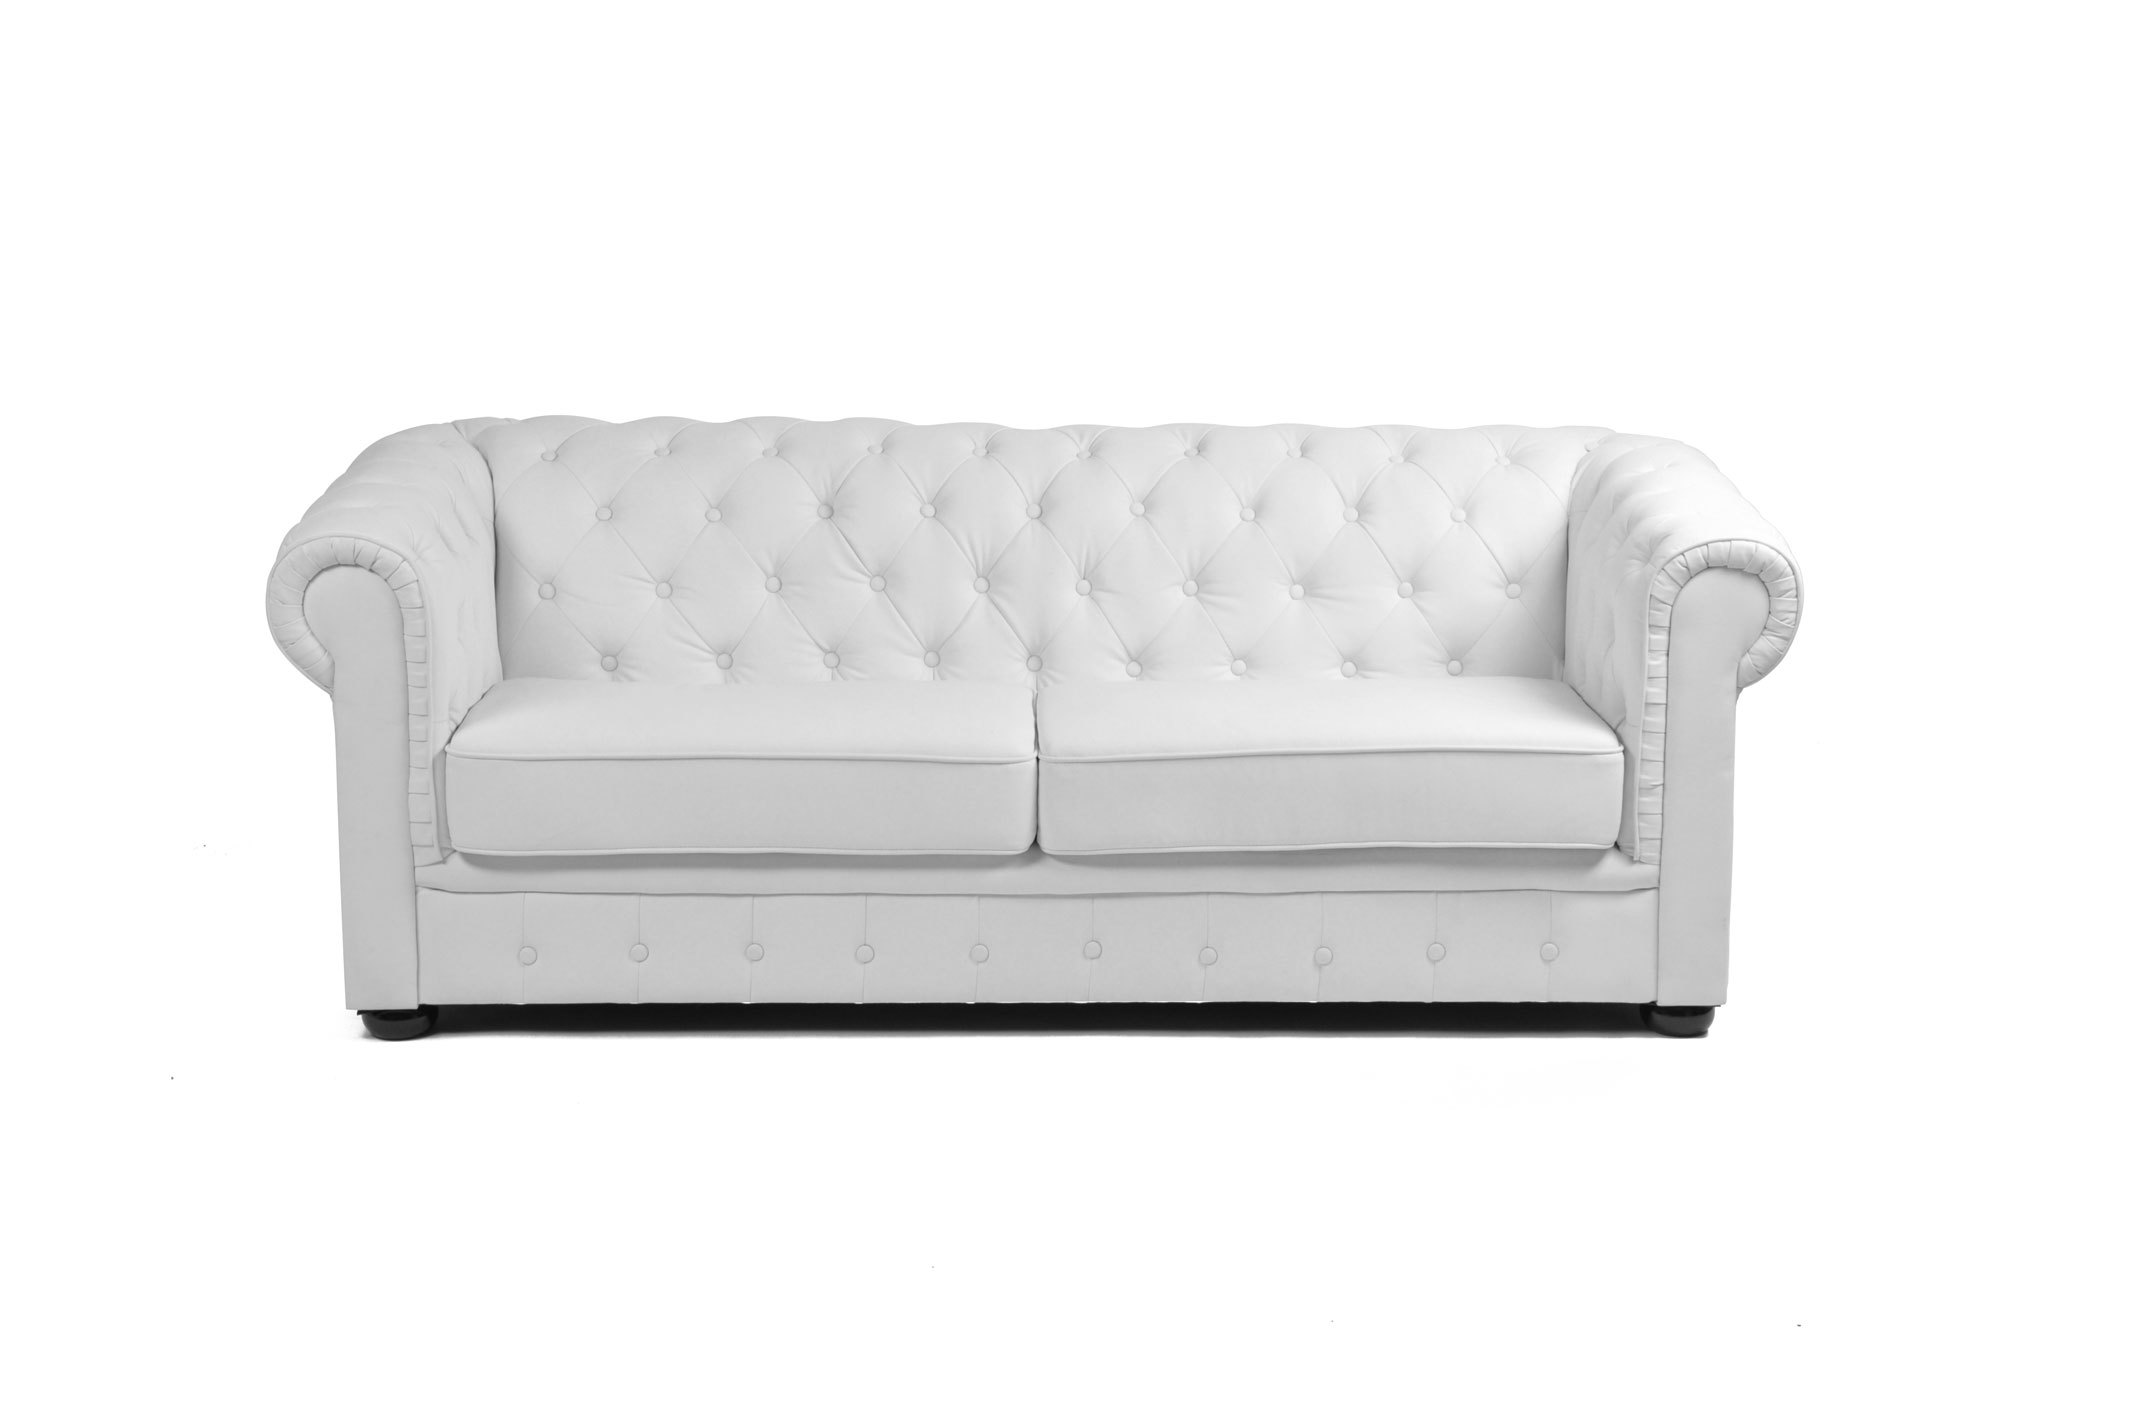 Canap chesterfield blanc 3 places design miliboo - Canape chesterfield blanc ...